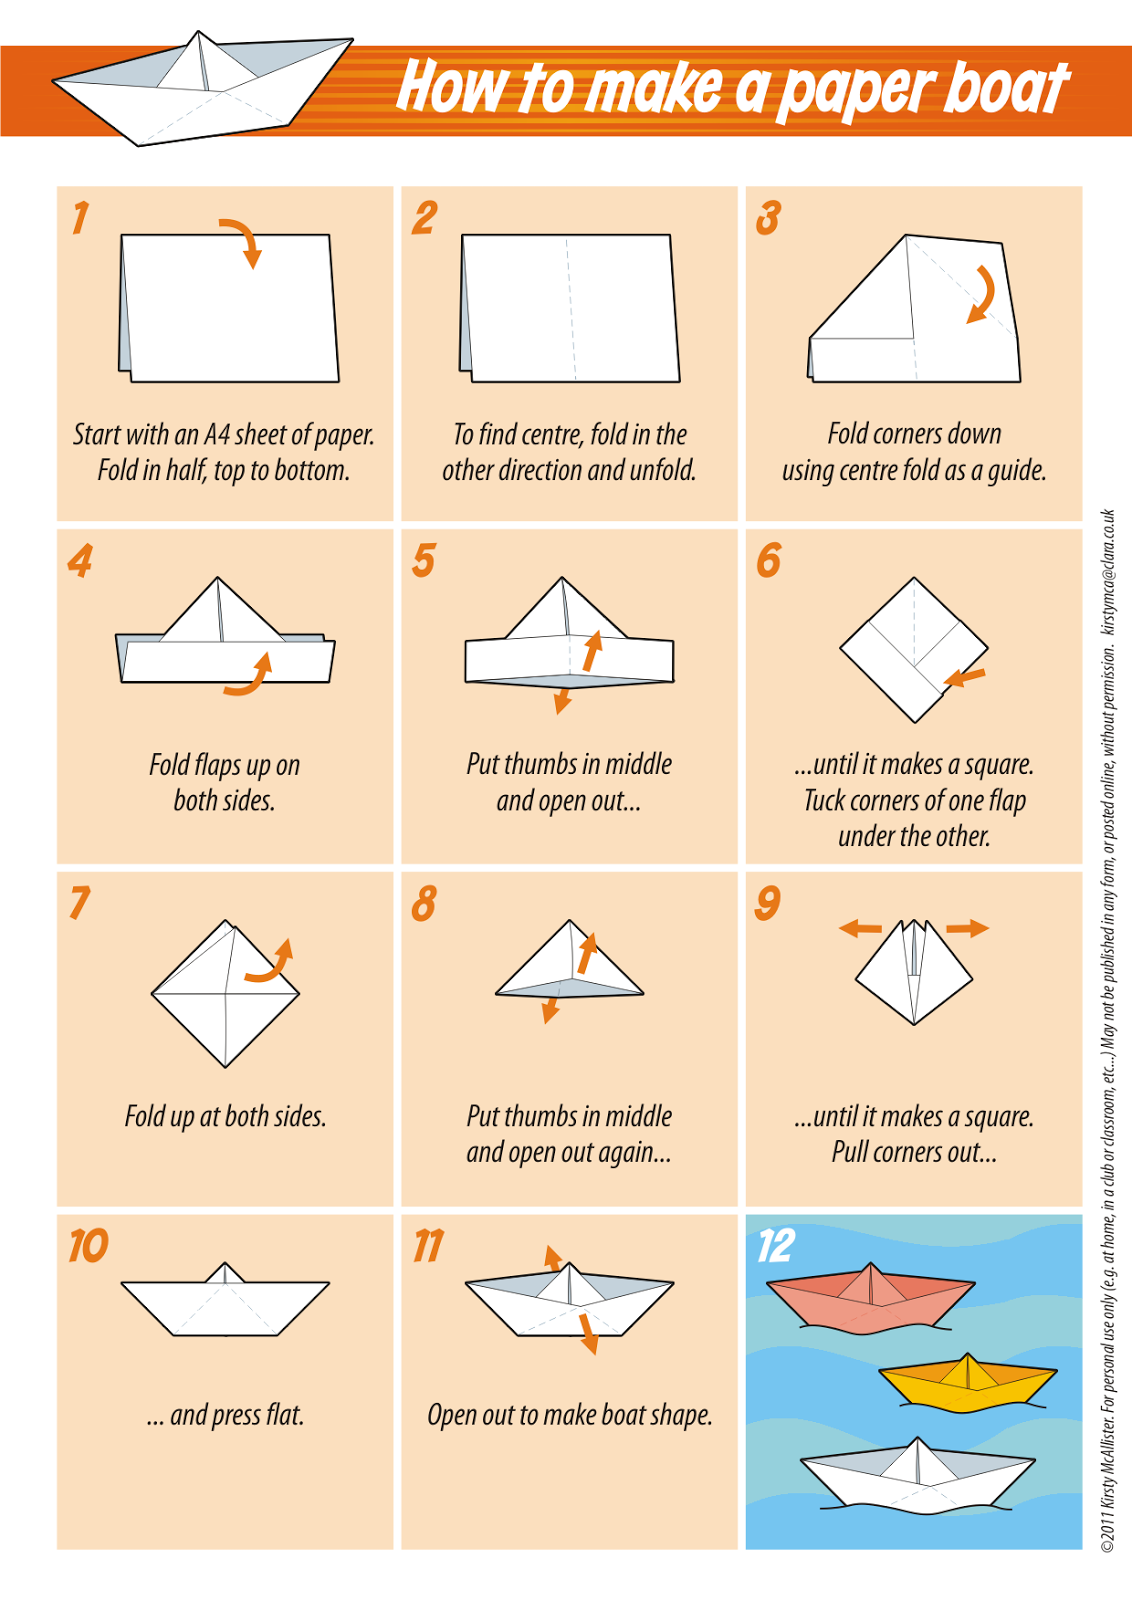 Making a simple boat out of paper with children 5